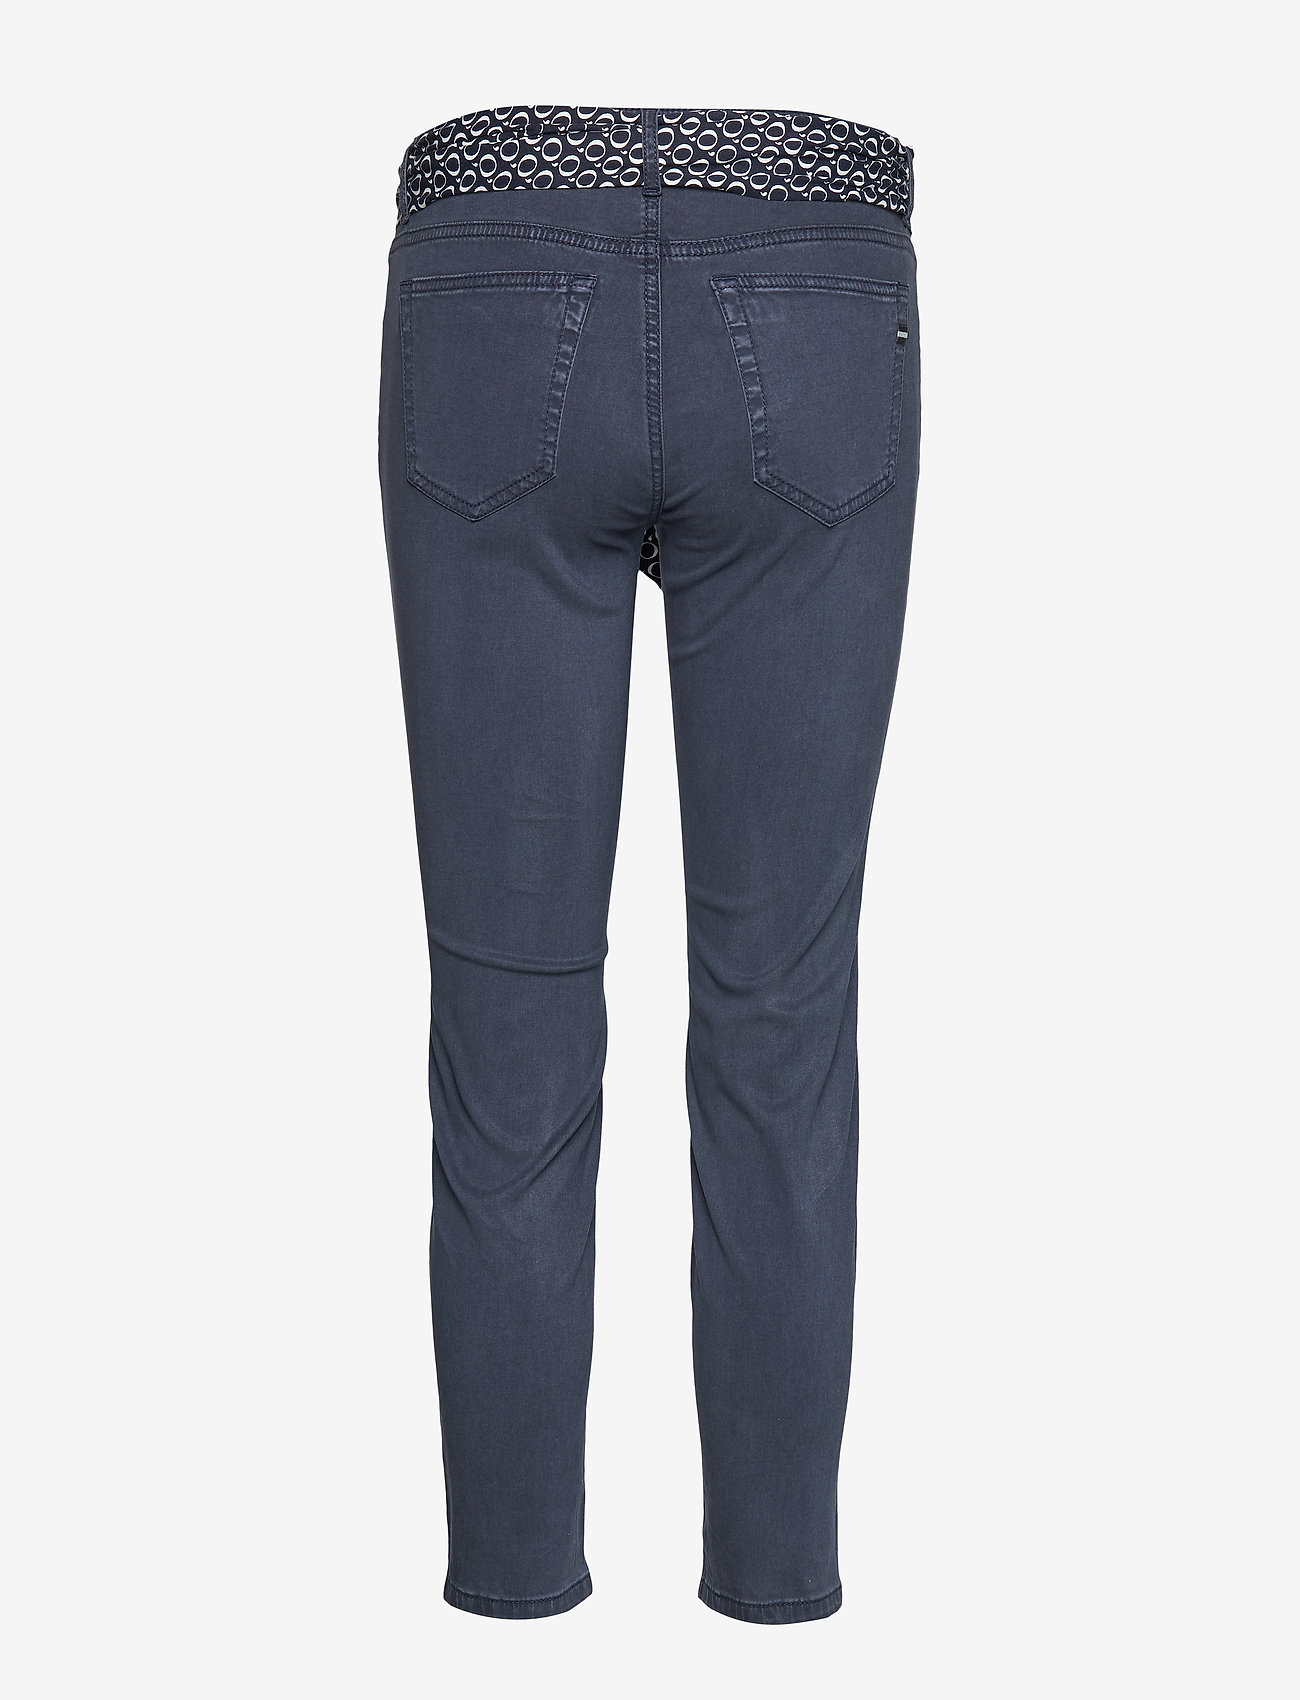 Marc O'Polo - Jeans - slim jeans - midnight blue - 1